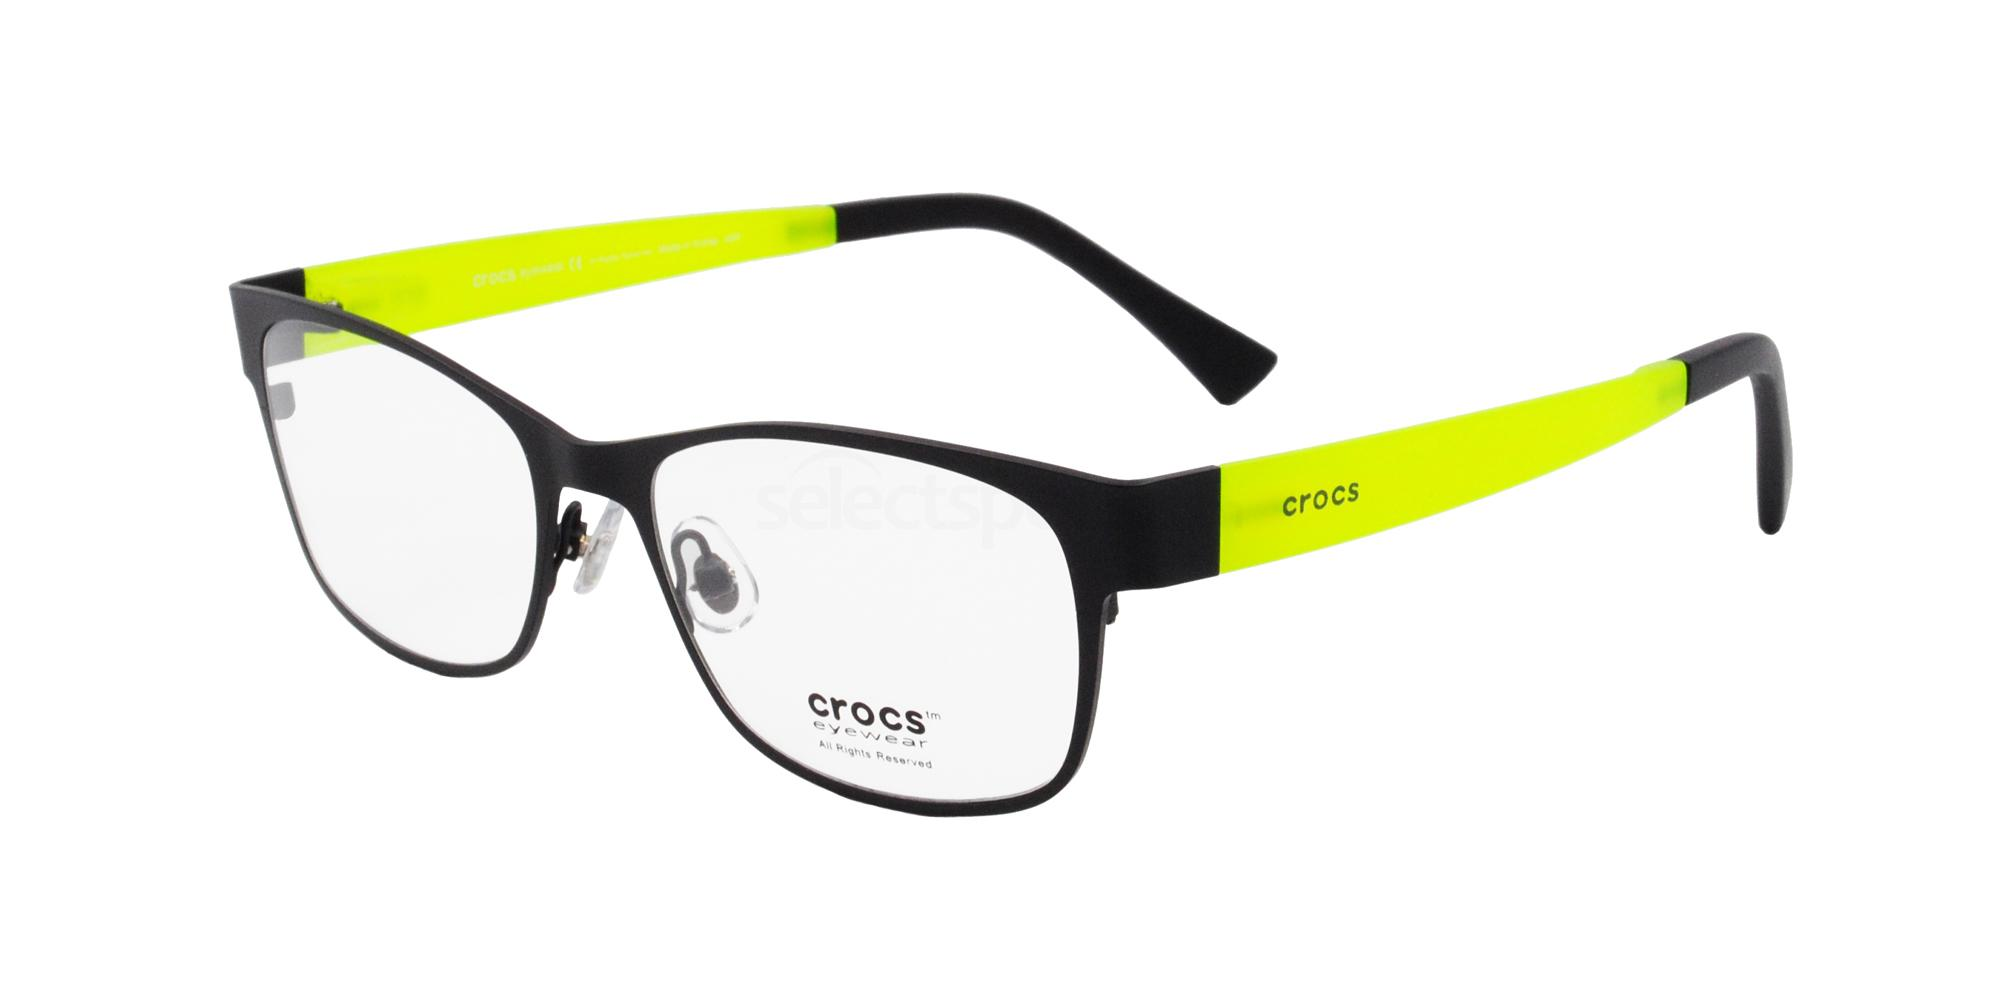 20GN CF643 Glasses, Crocs Eyewear